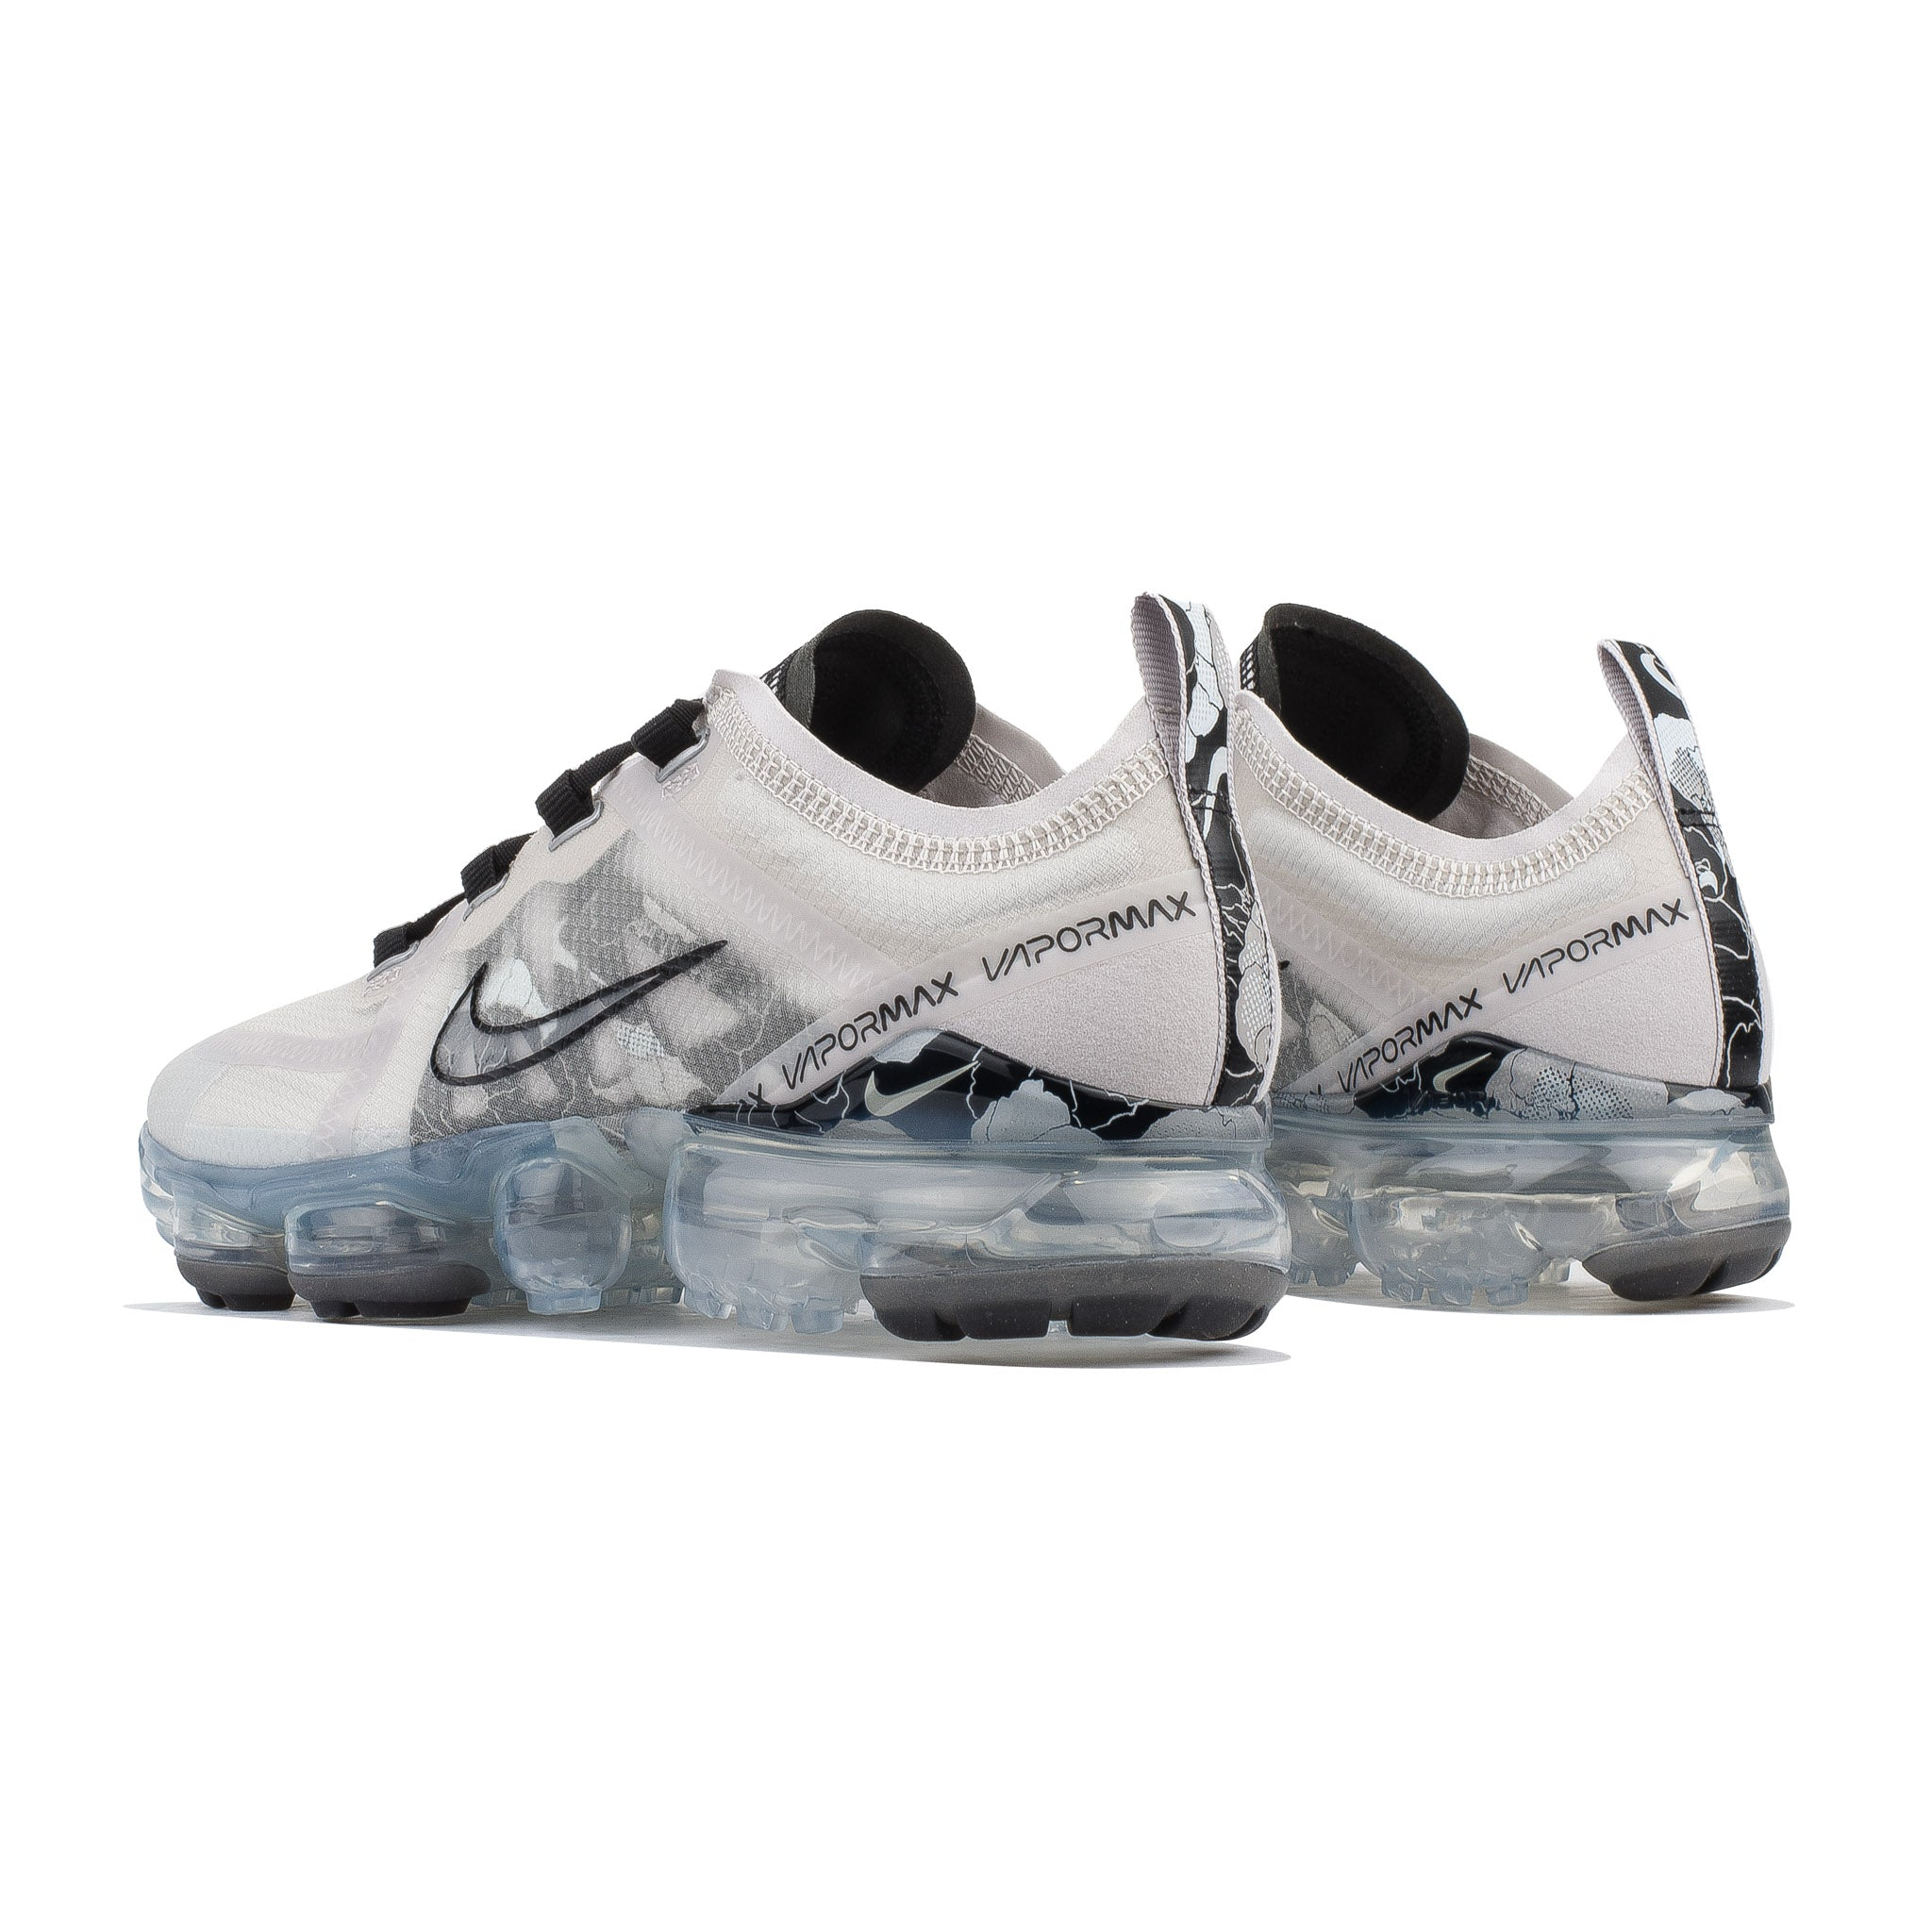 Wmns Air Vapormax 2019 SE CD7094-001 Vast Grey